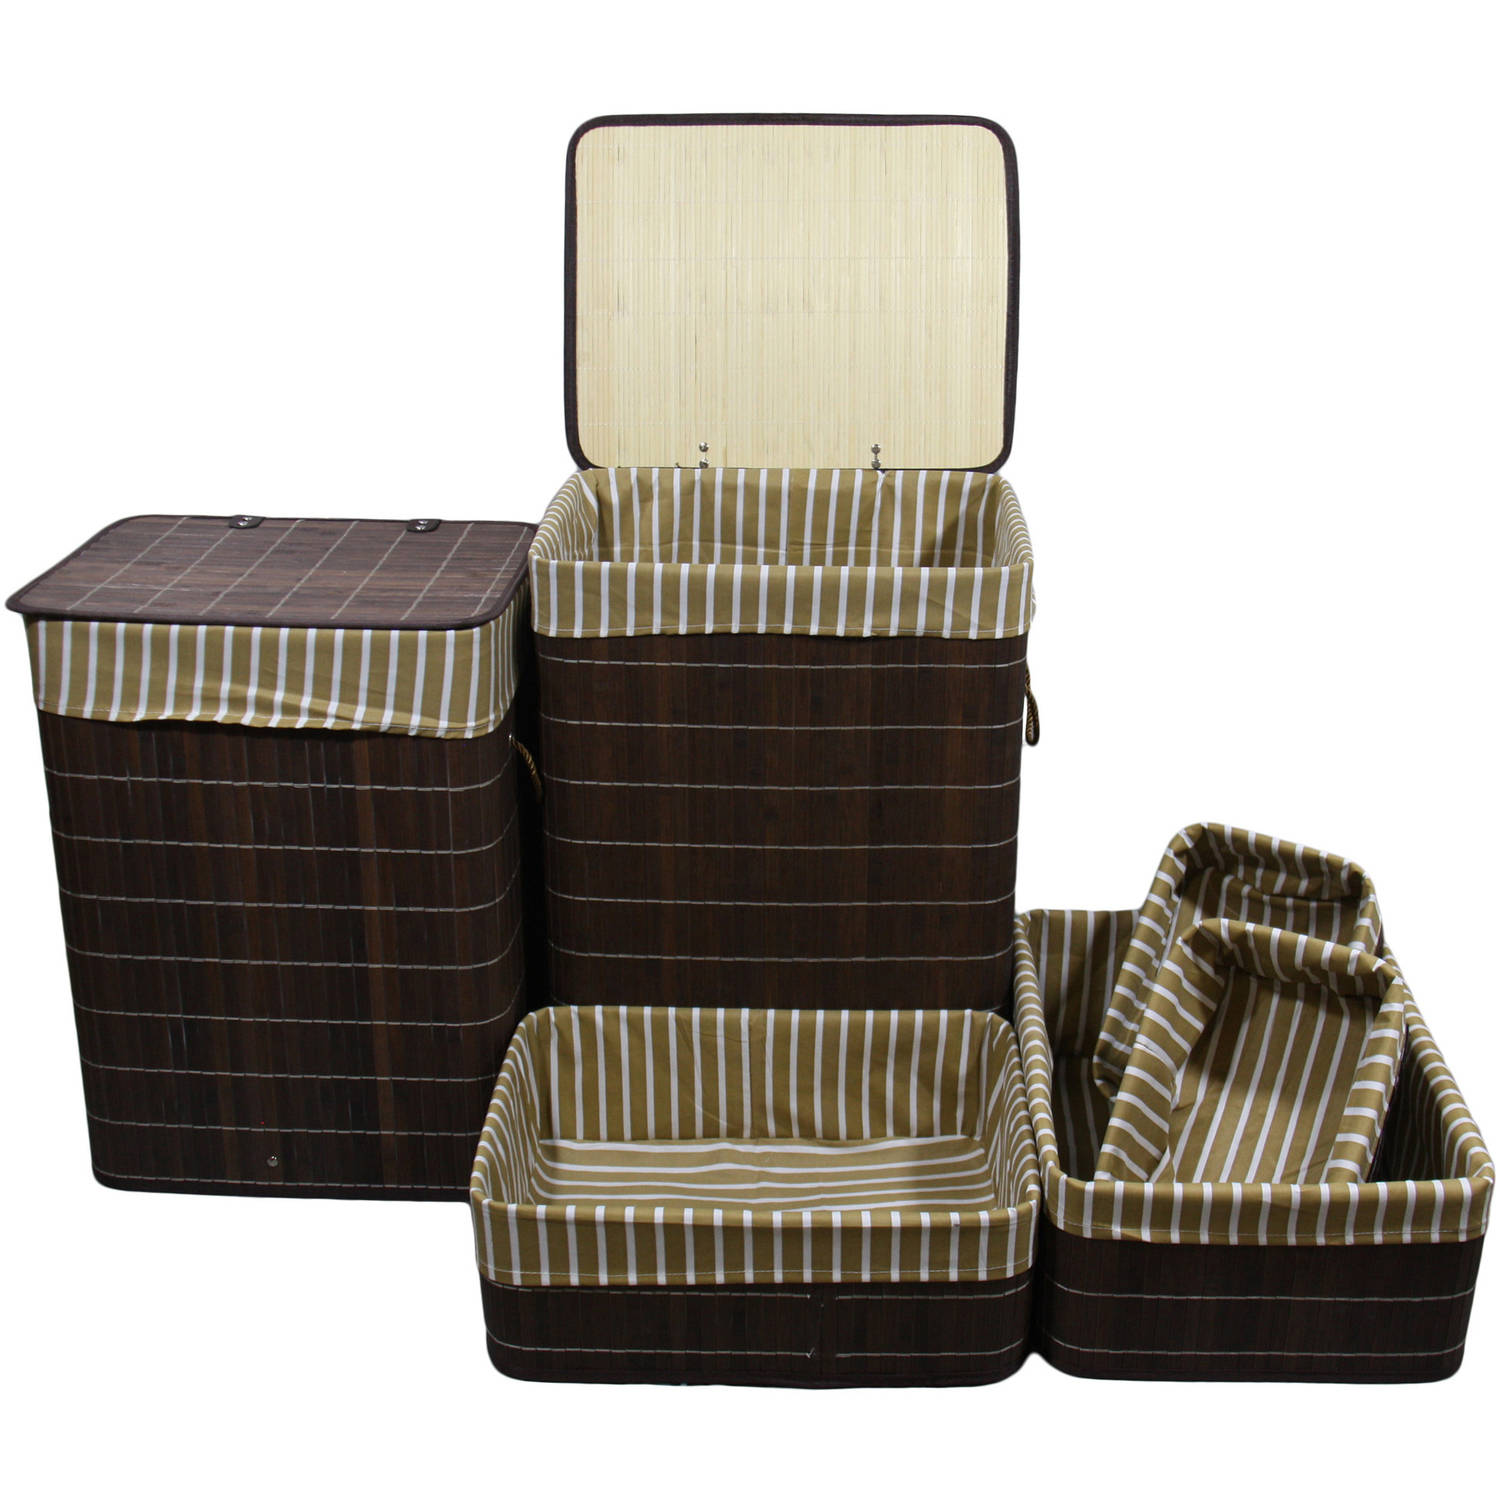 Set of 6pcs Square Folding Bamboo Laundry Basket and Trays